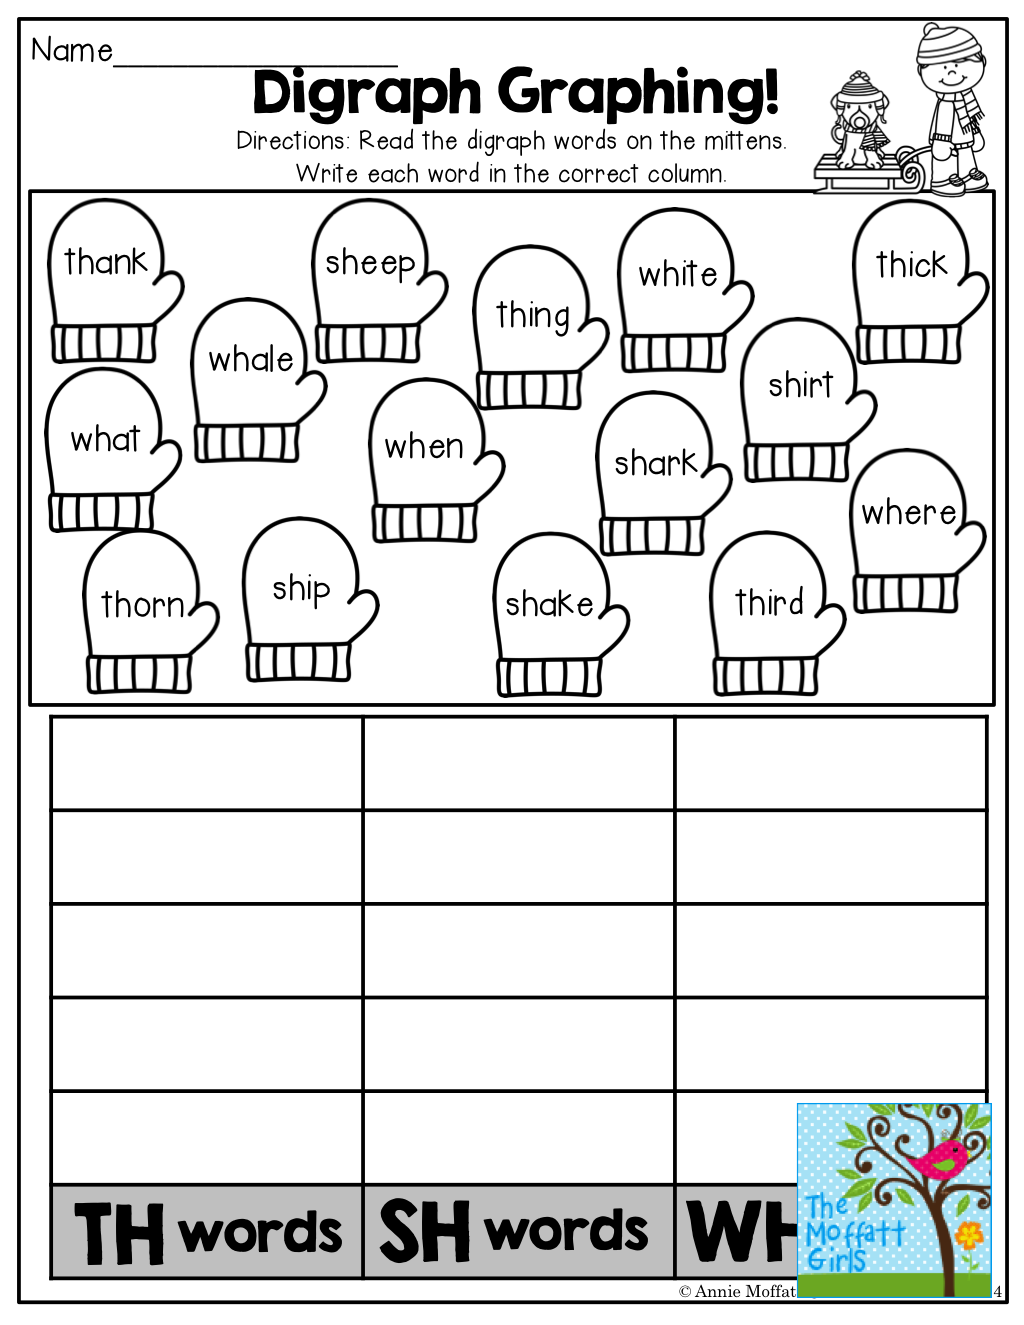 Digraph Graphing And Tons Of Other Fun Printables